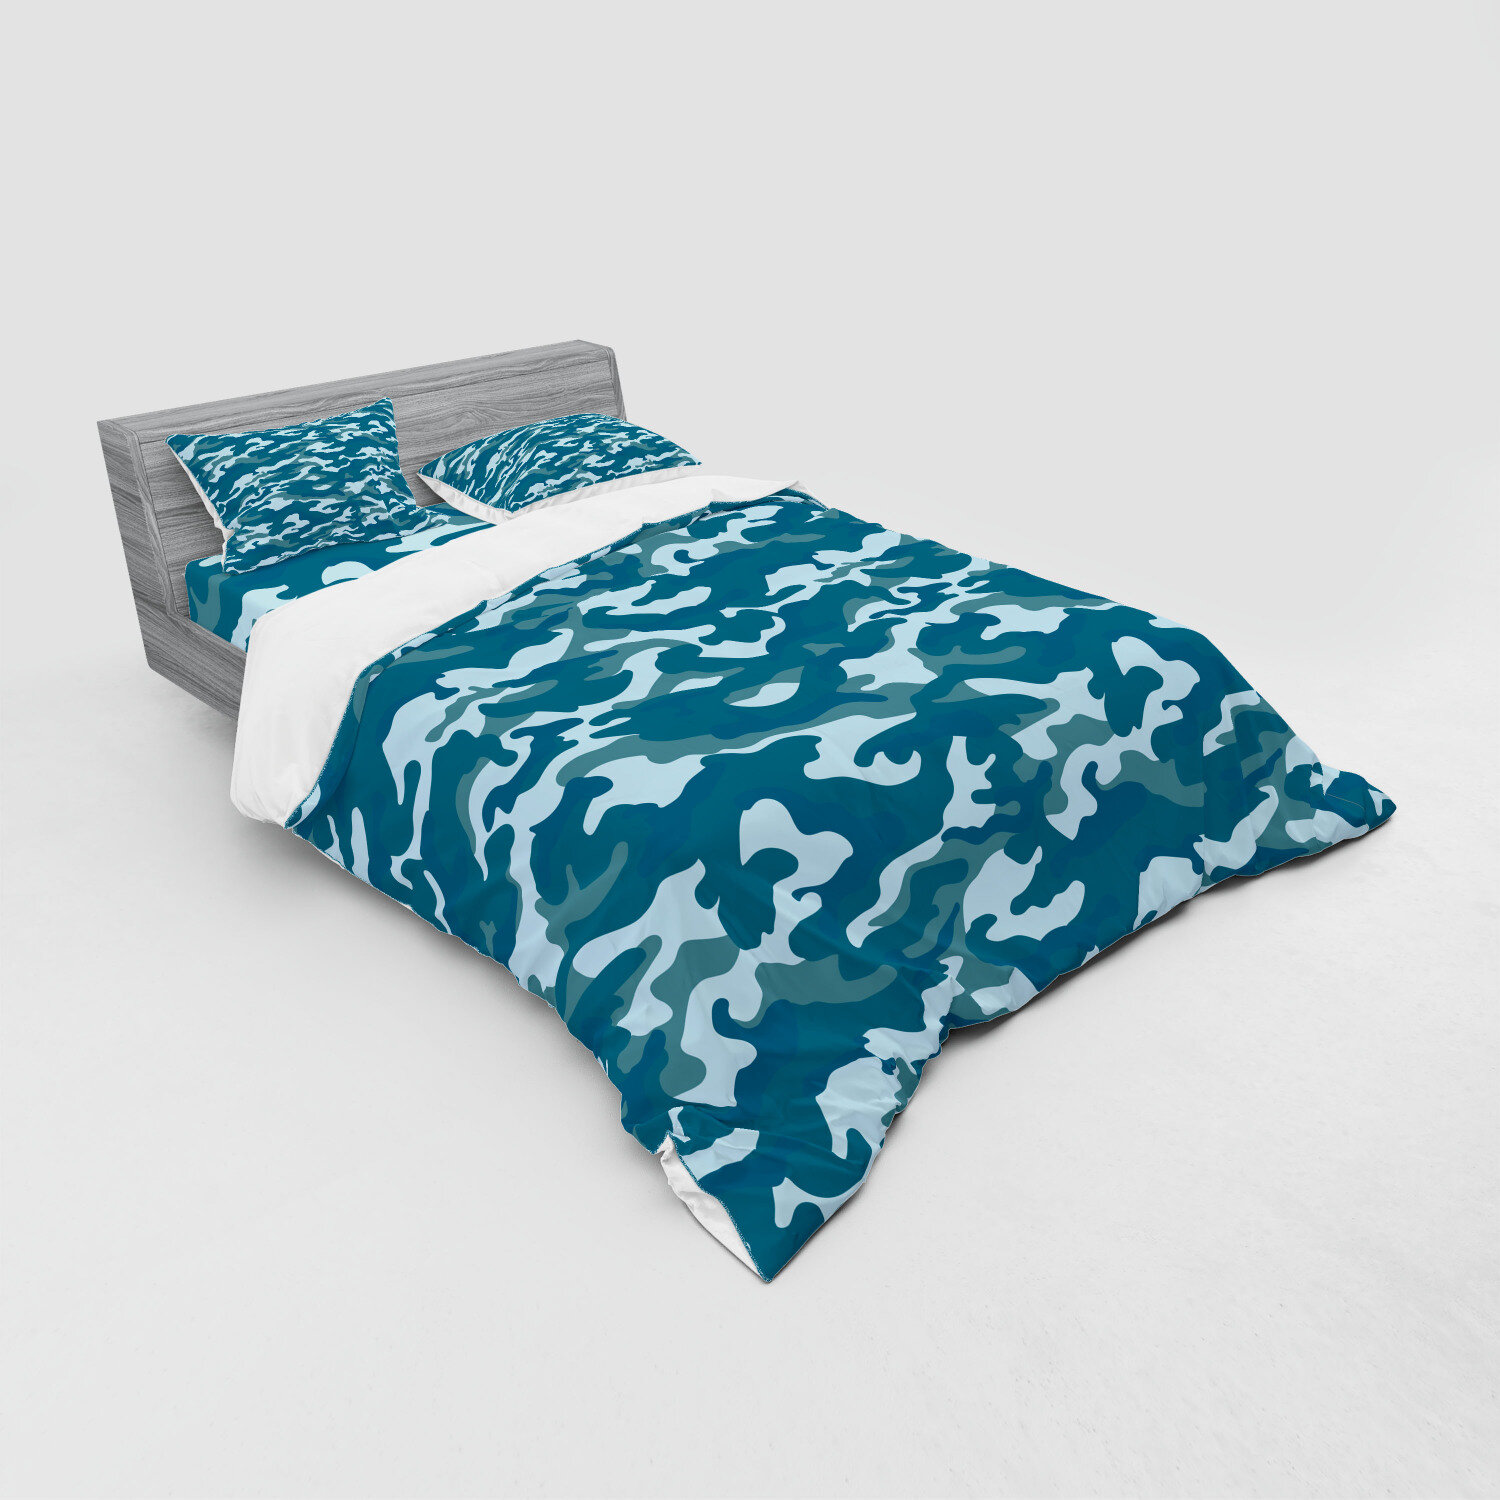 East Urban Home Ambesonne Camo Bedding Set Camouflage Theme In Oceanic Colours Sea Water Inspired Illustration 4 Piece Duvet Cover Set With Shams And Fitted Sheet Queen Size Dark Blue Slate Blue